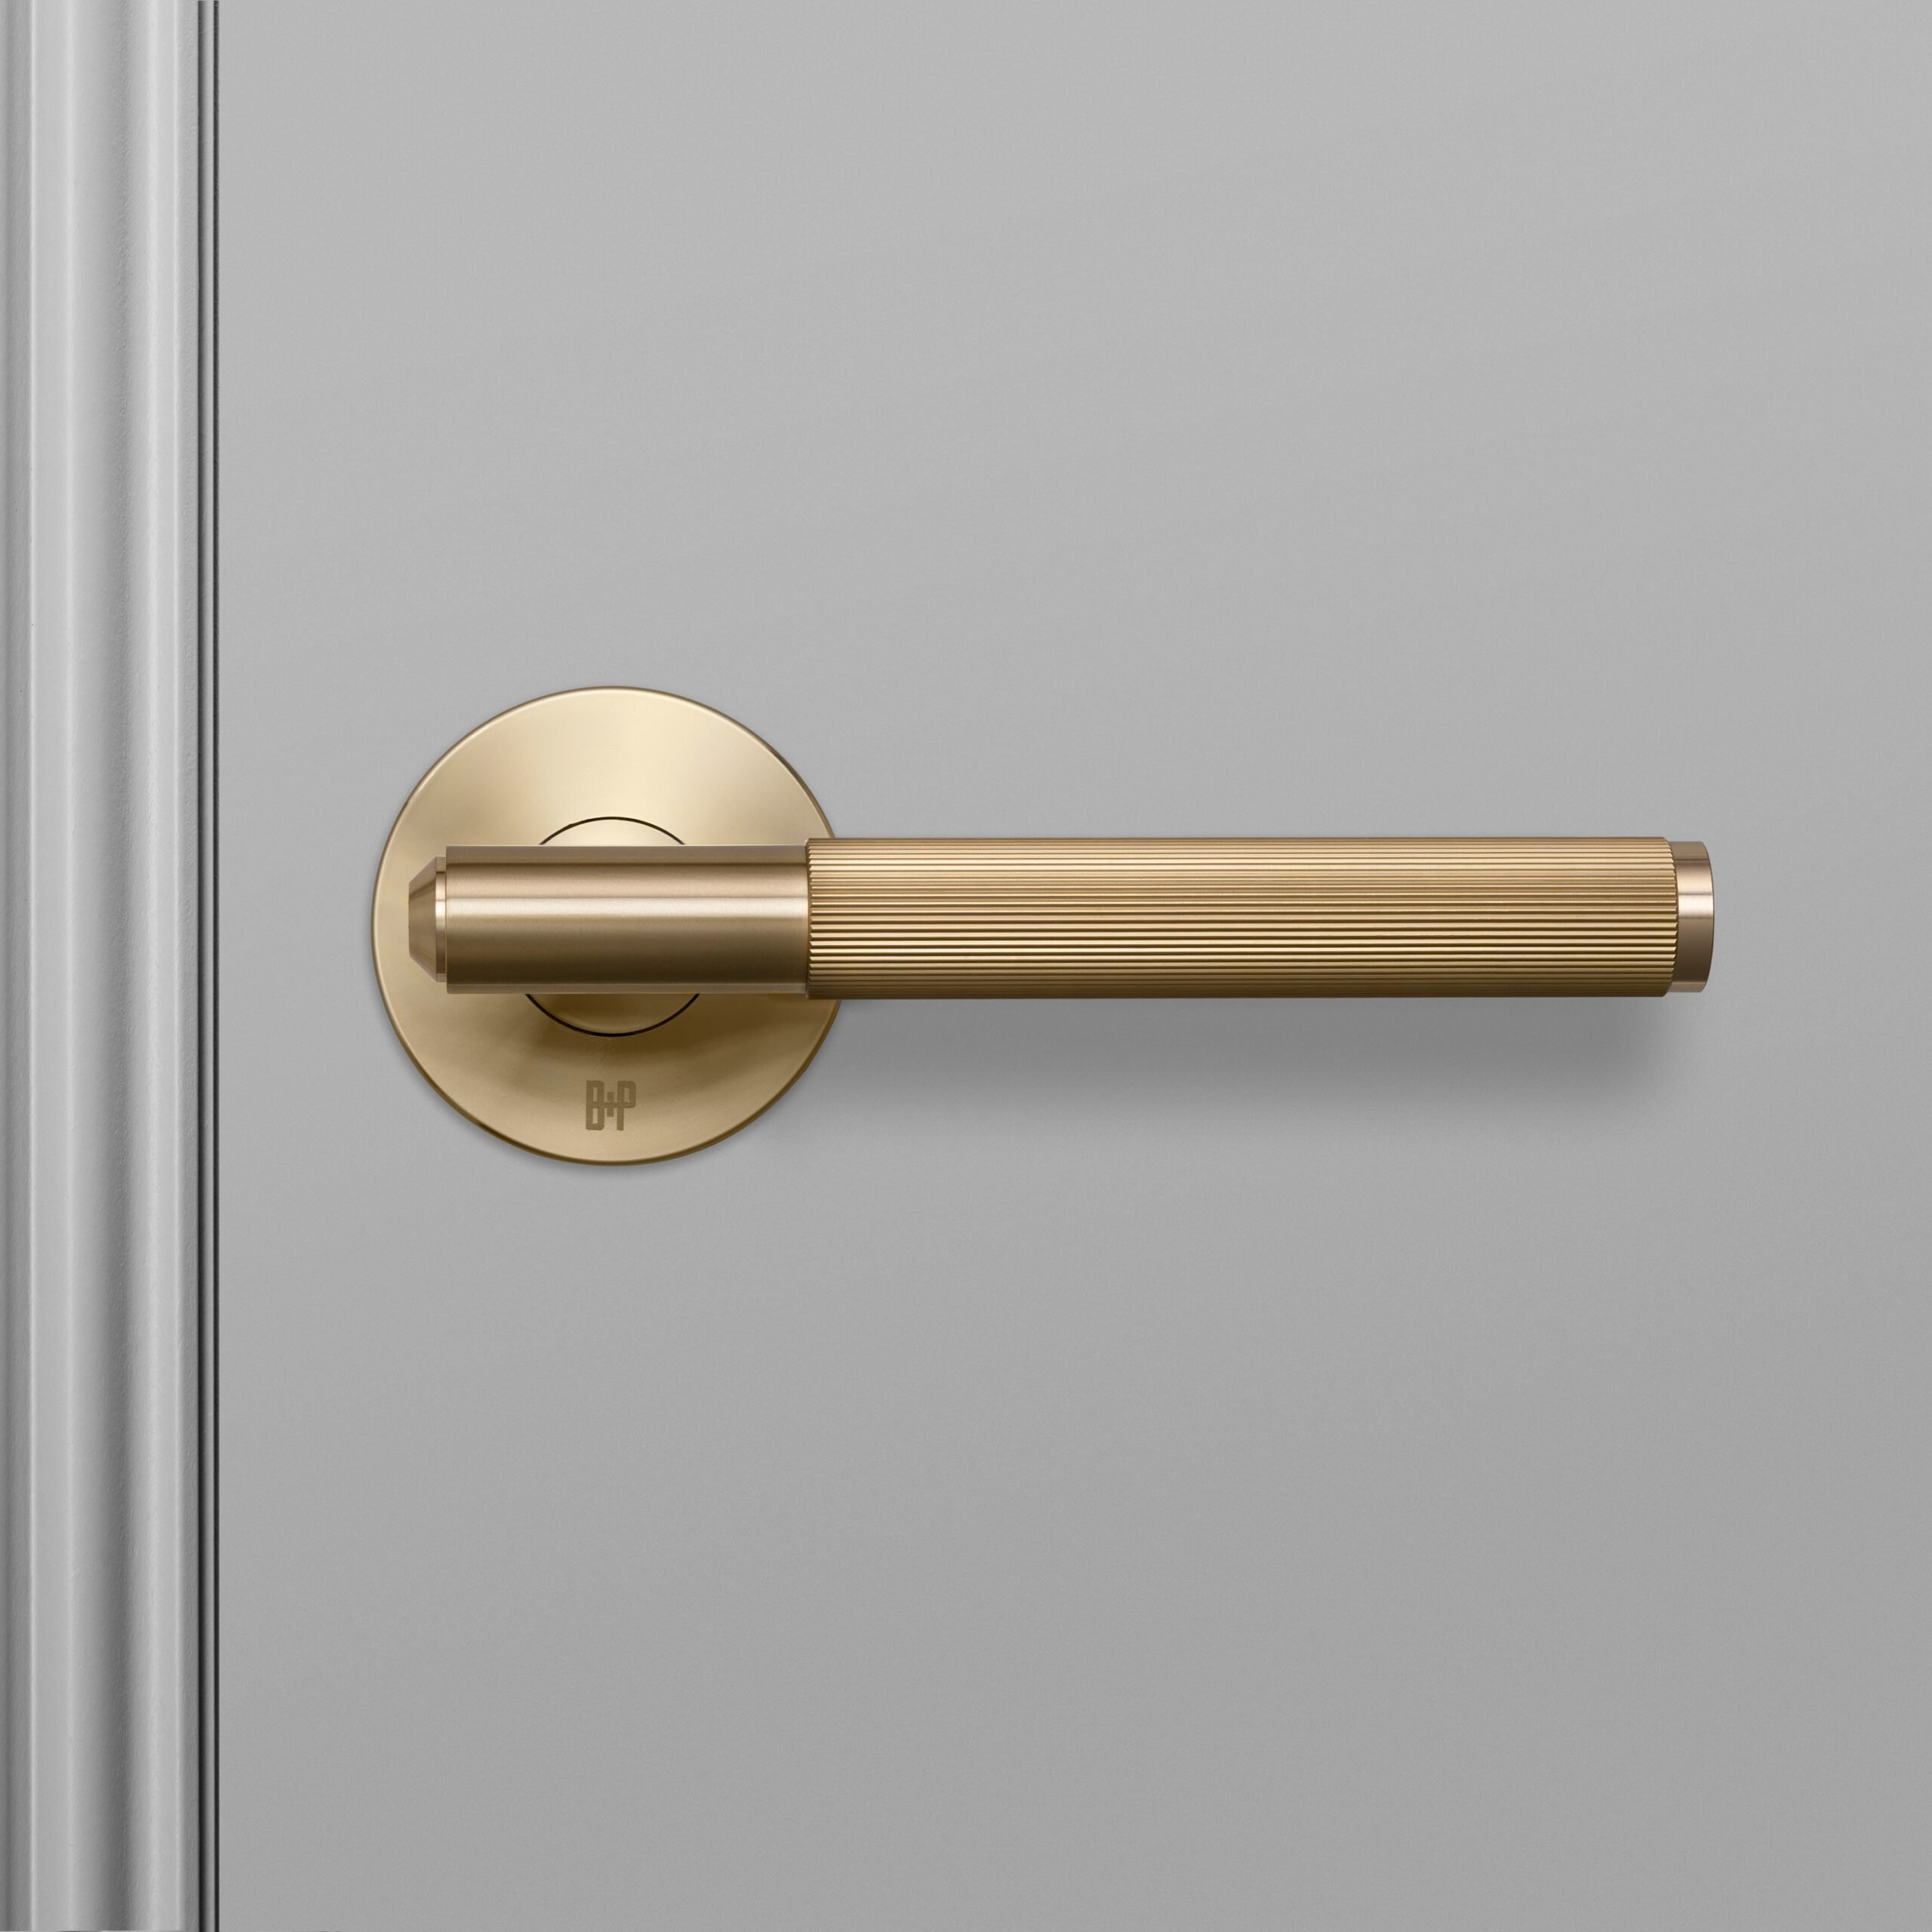 Door-handle_Fixed_Linear_Brass_A2_Web_Square